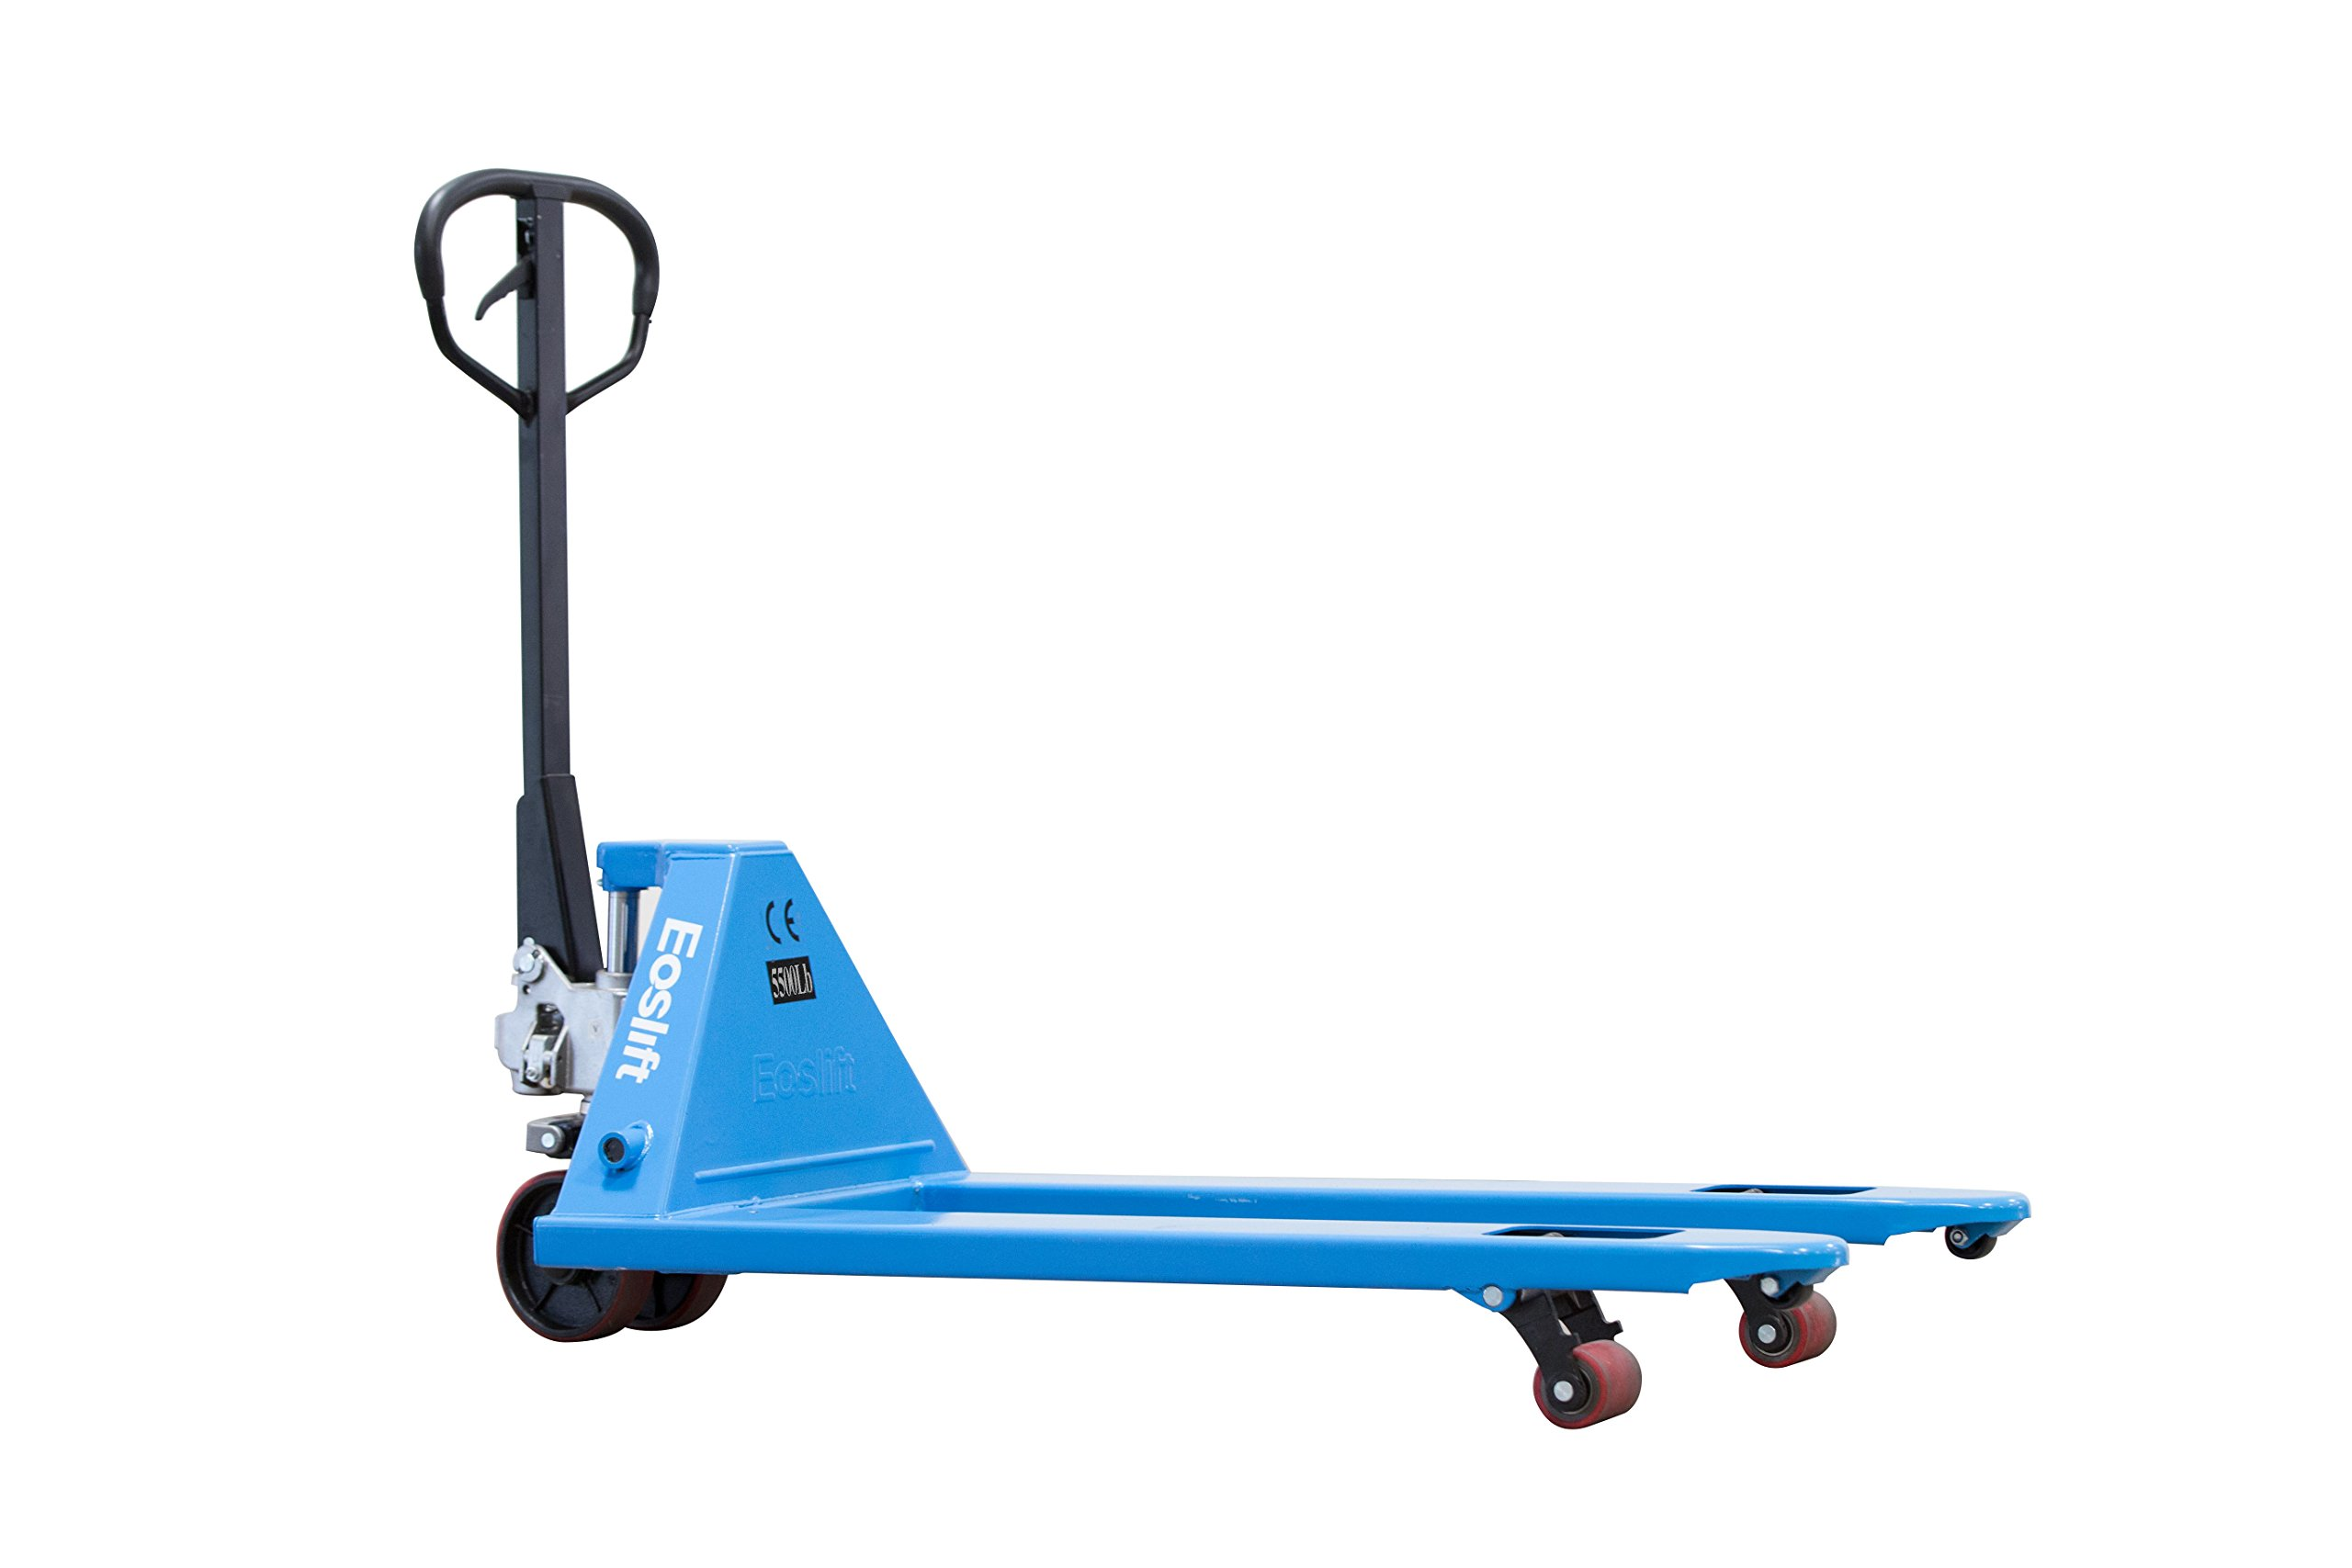 Eoslift M25N Hand Pallet Truck, Blue (Pack of 6) by Eoslift